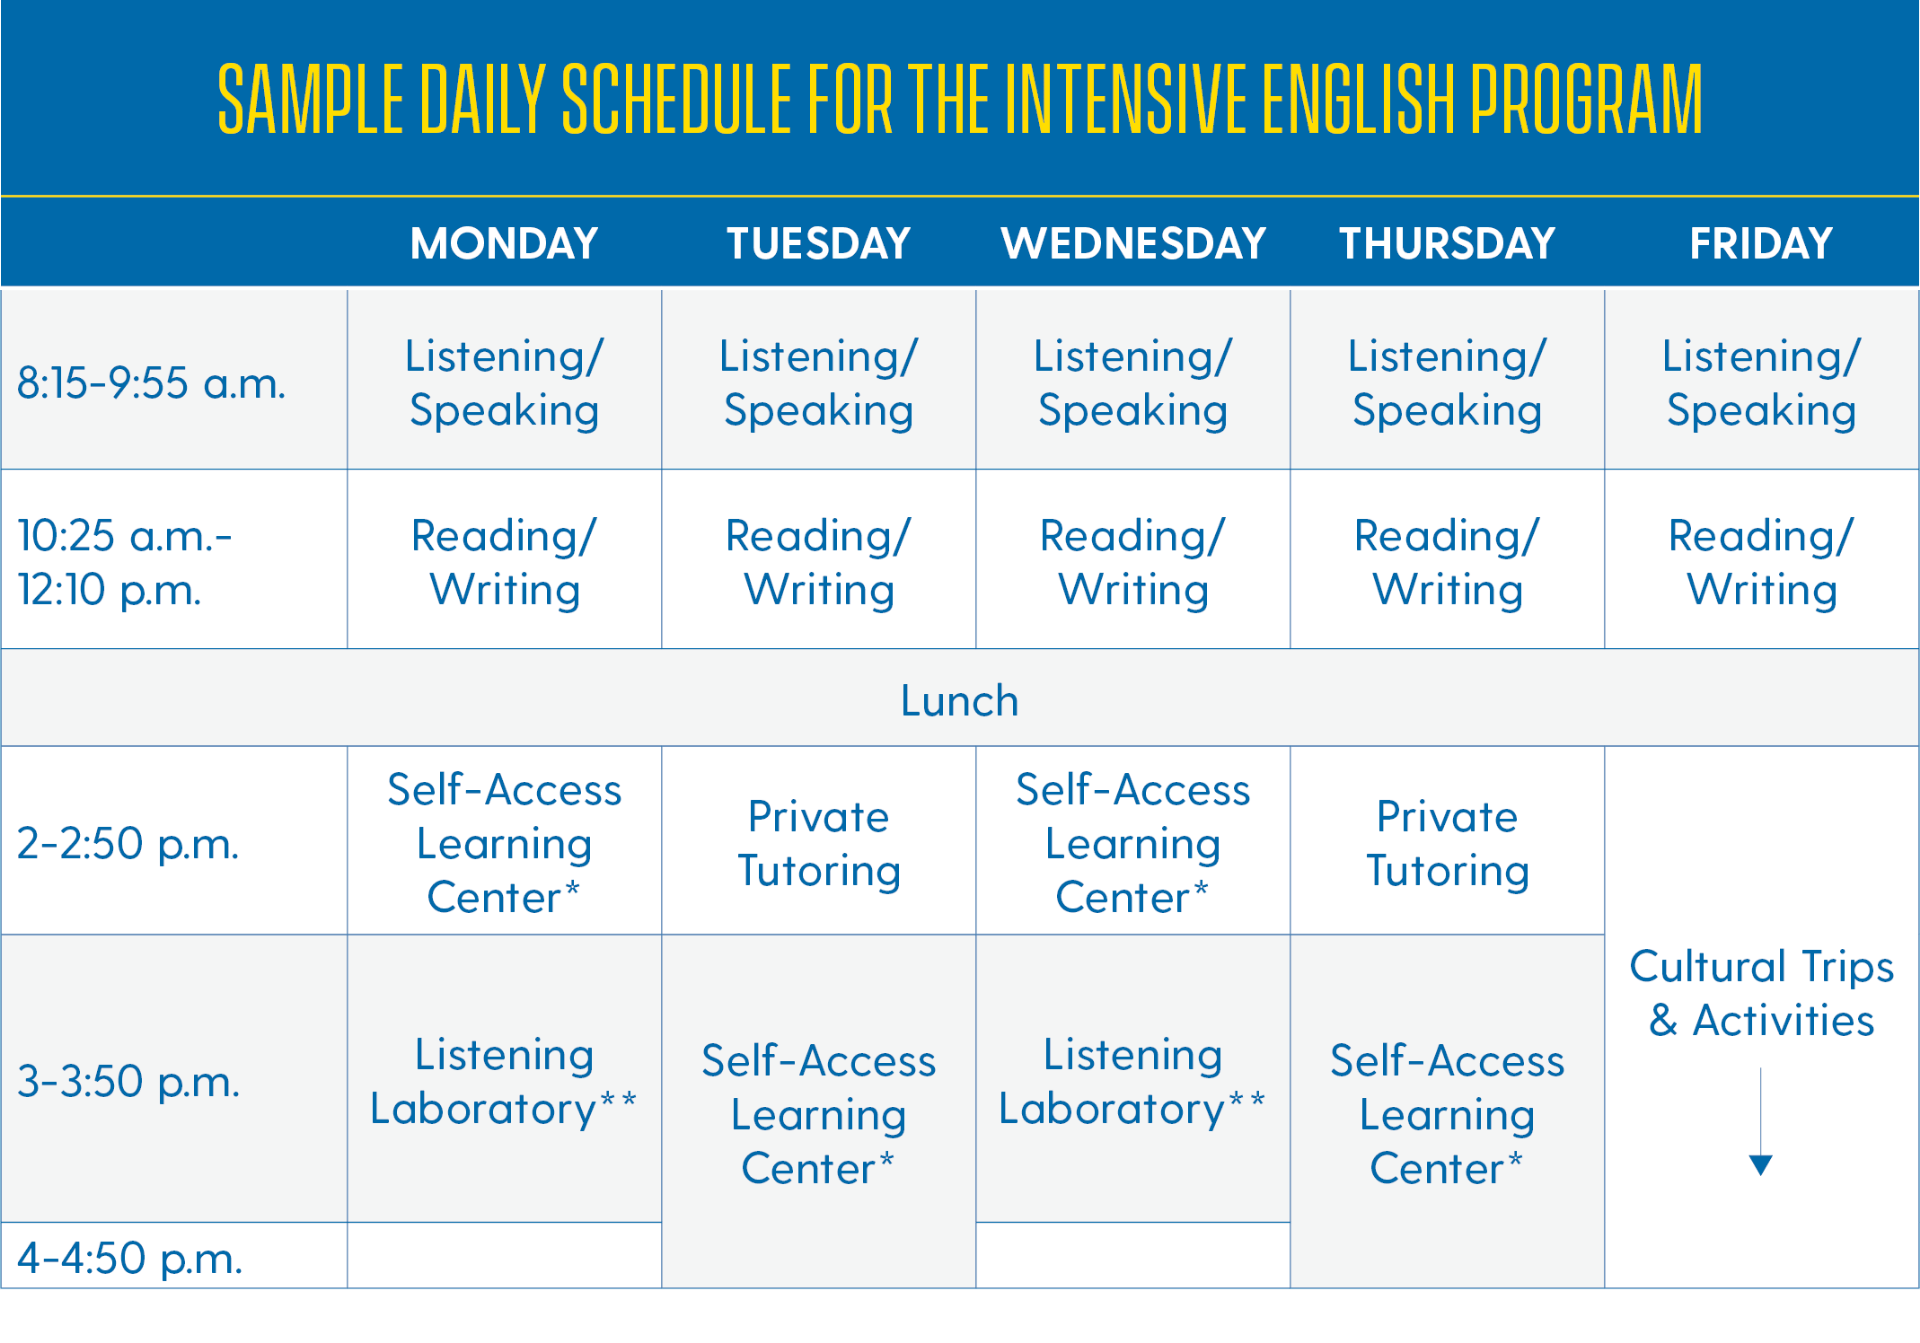 Typical daily schedule in the intensive English program